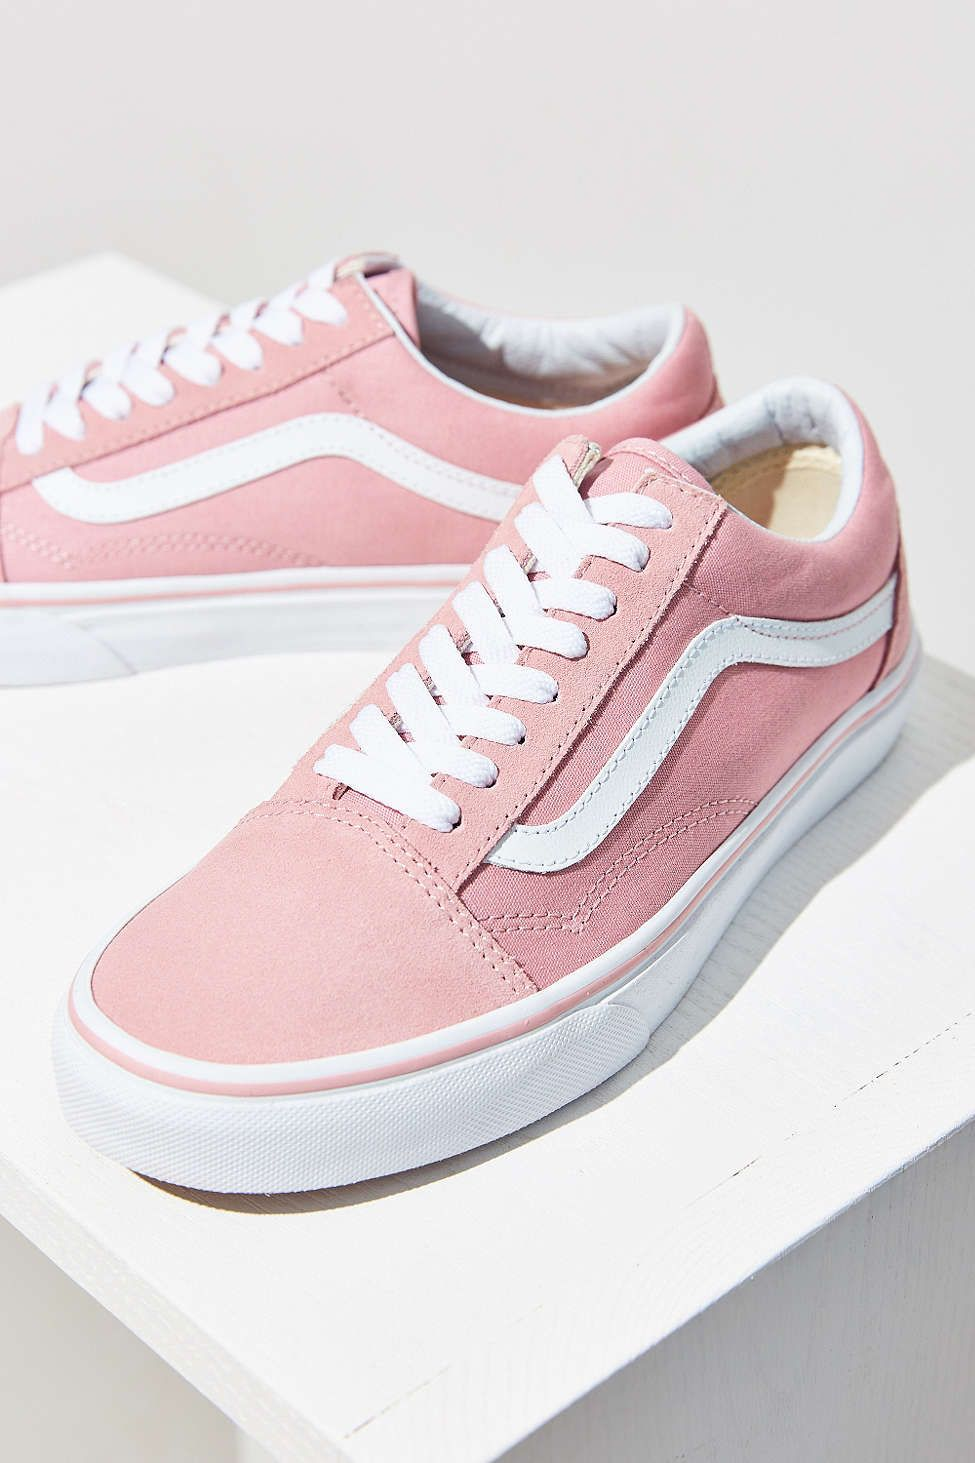 Vans Pink Old Skool Sneaker | Shoes | Pinterest | Vans Urban outfitters and Urban